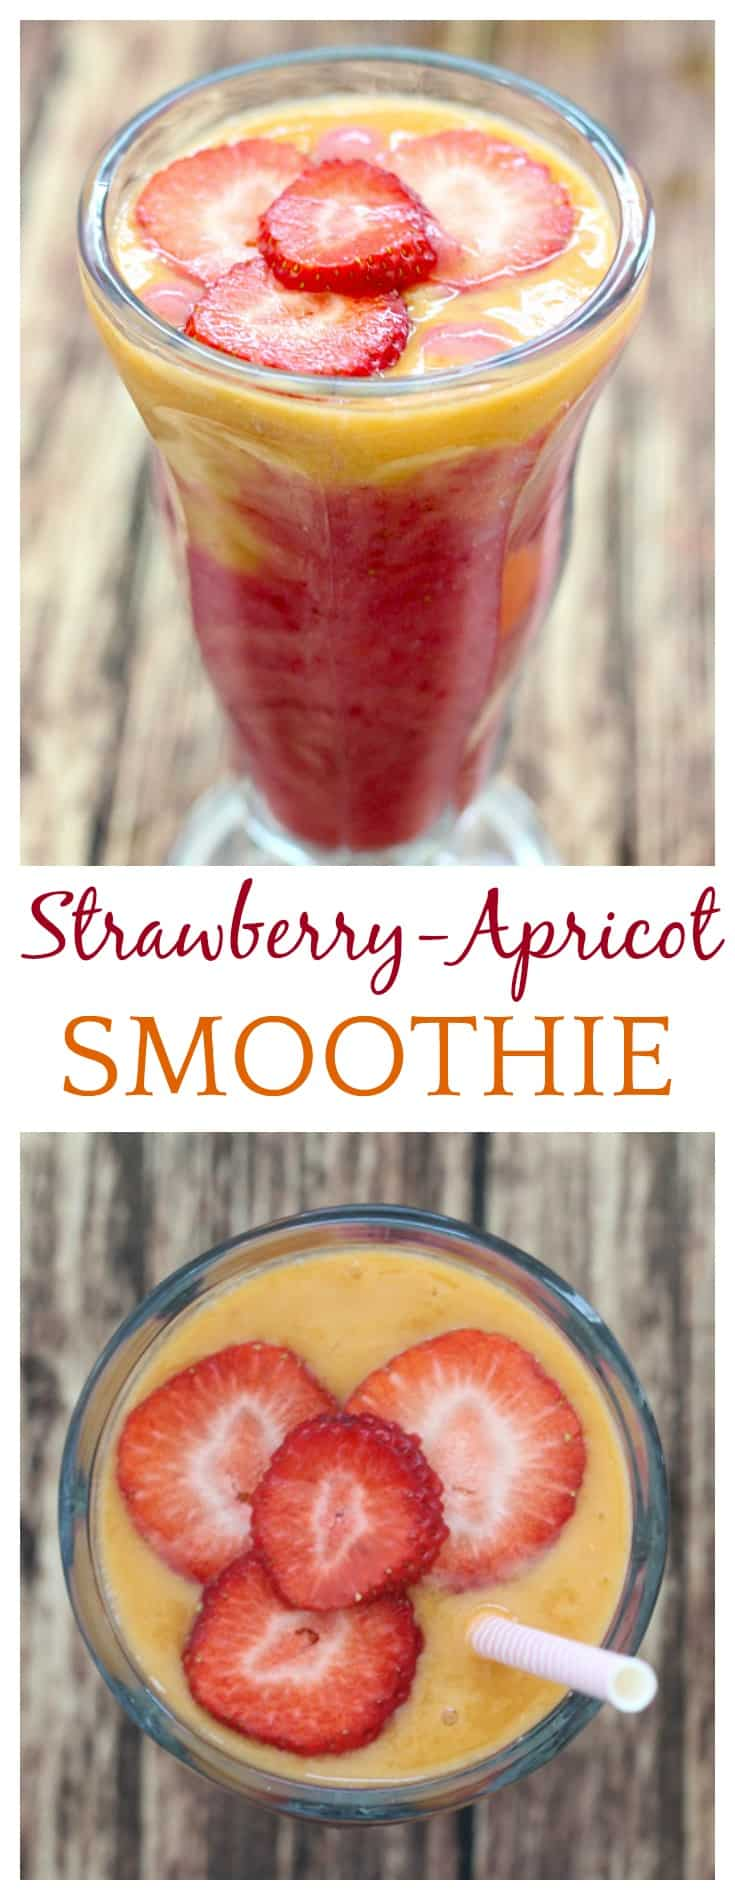 My current favorite way to enjoy fresh apricots is in this Summertime Strawberry-Apricot Smoothie! This recipe only takes about 5 minutes and is the perfect way to start a summer day!